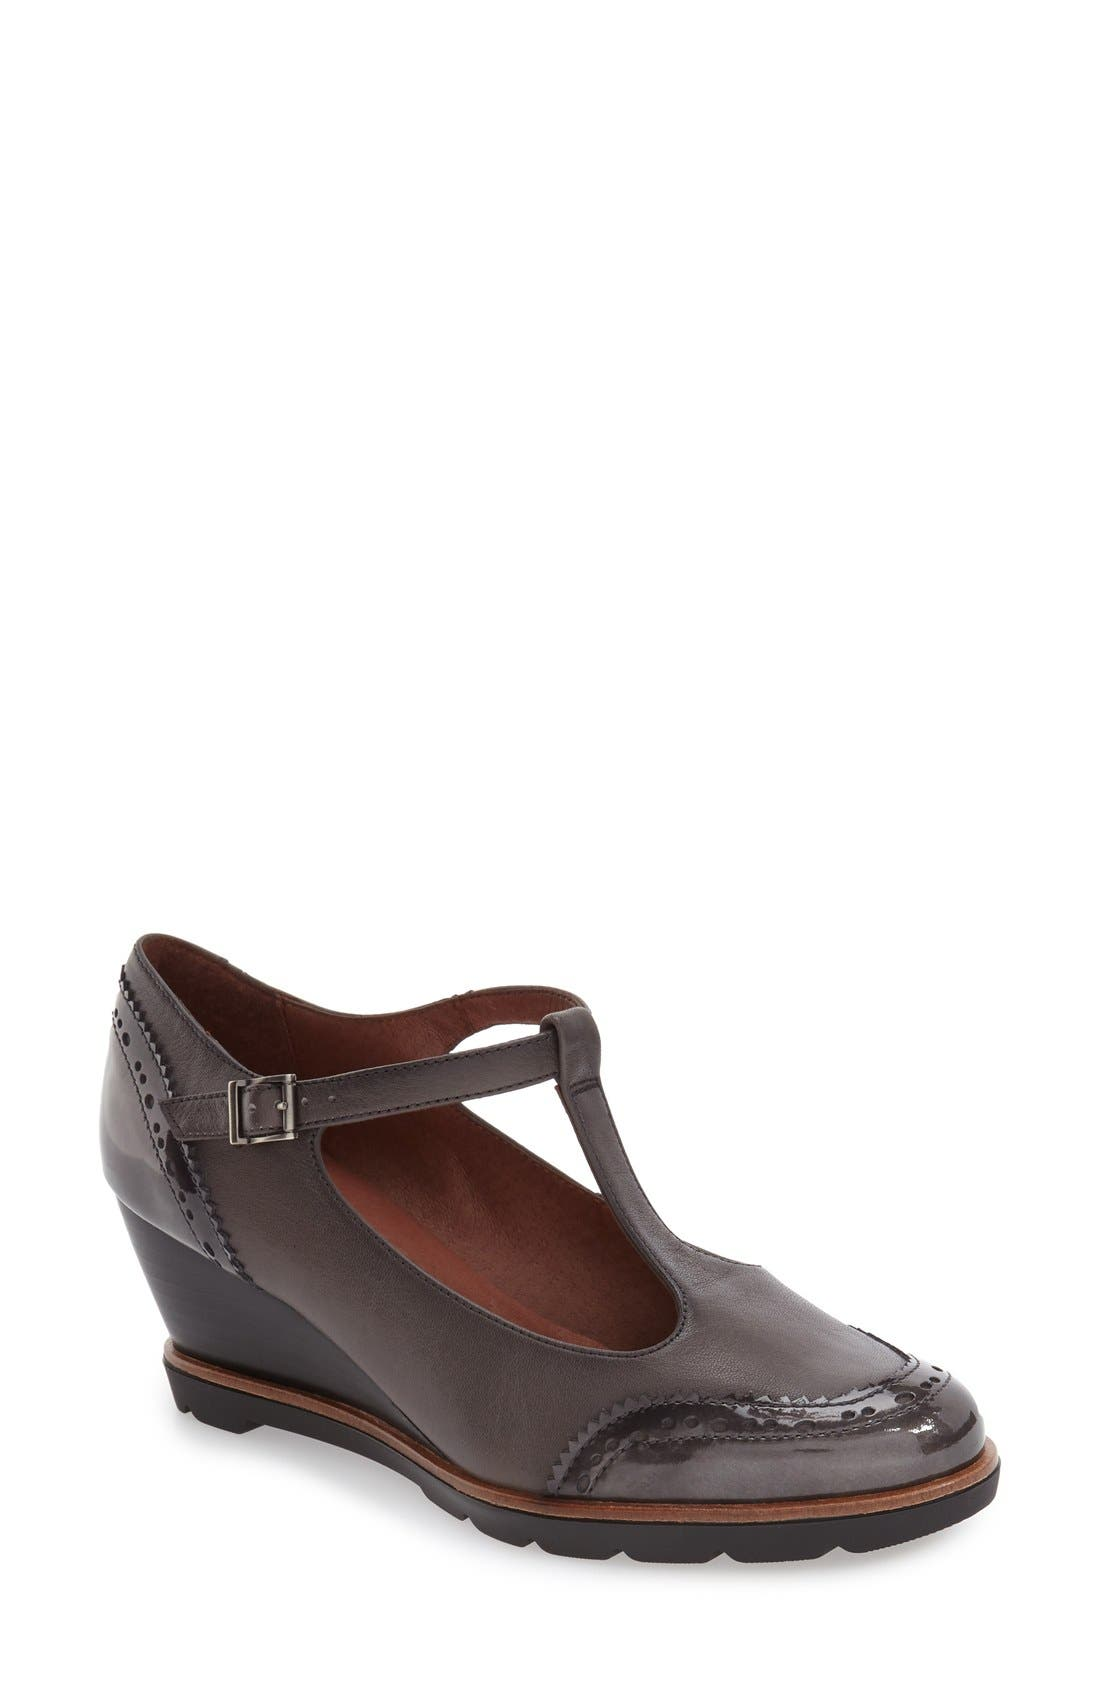 Hispanitas 'Halea' T-Strap Wedge Pump (Women)